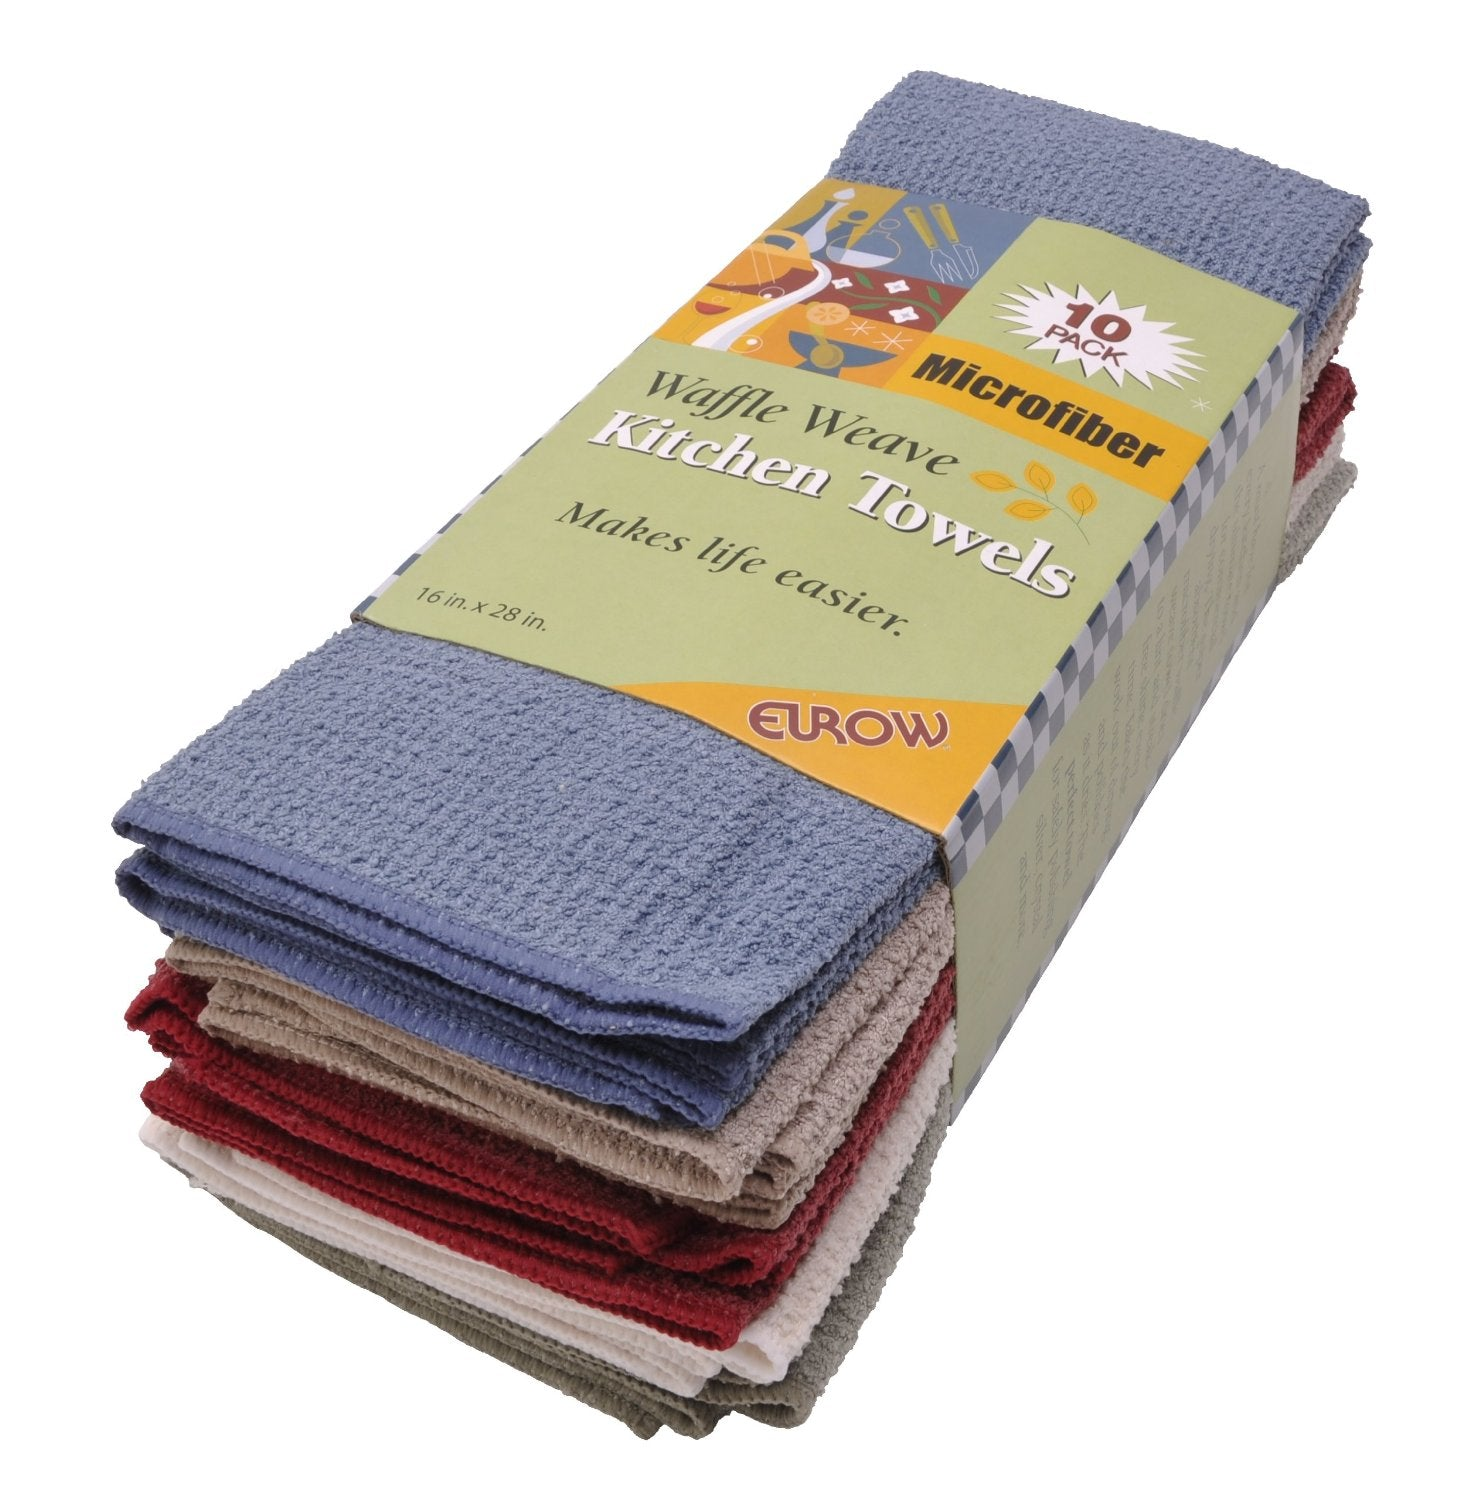 eurow microfiber waffle weave kitchen towels 10 pack